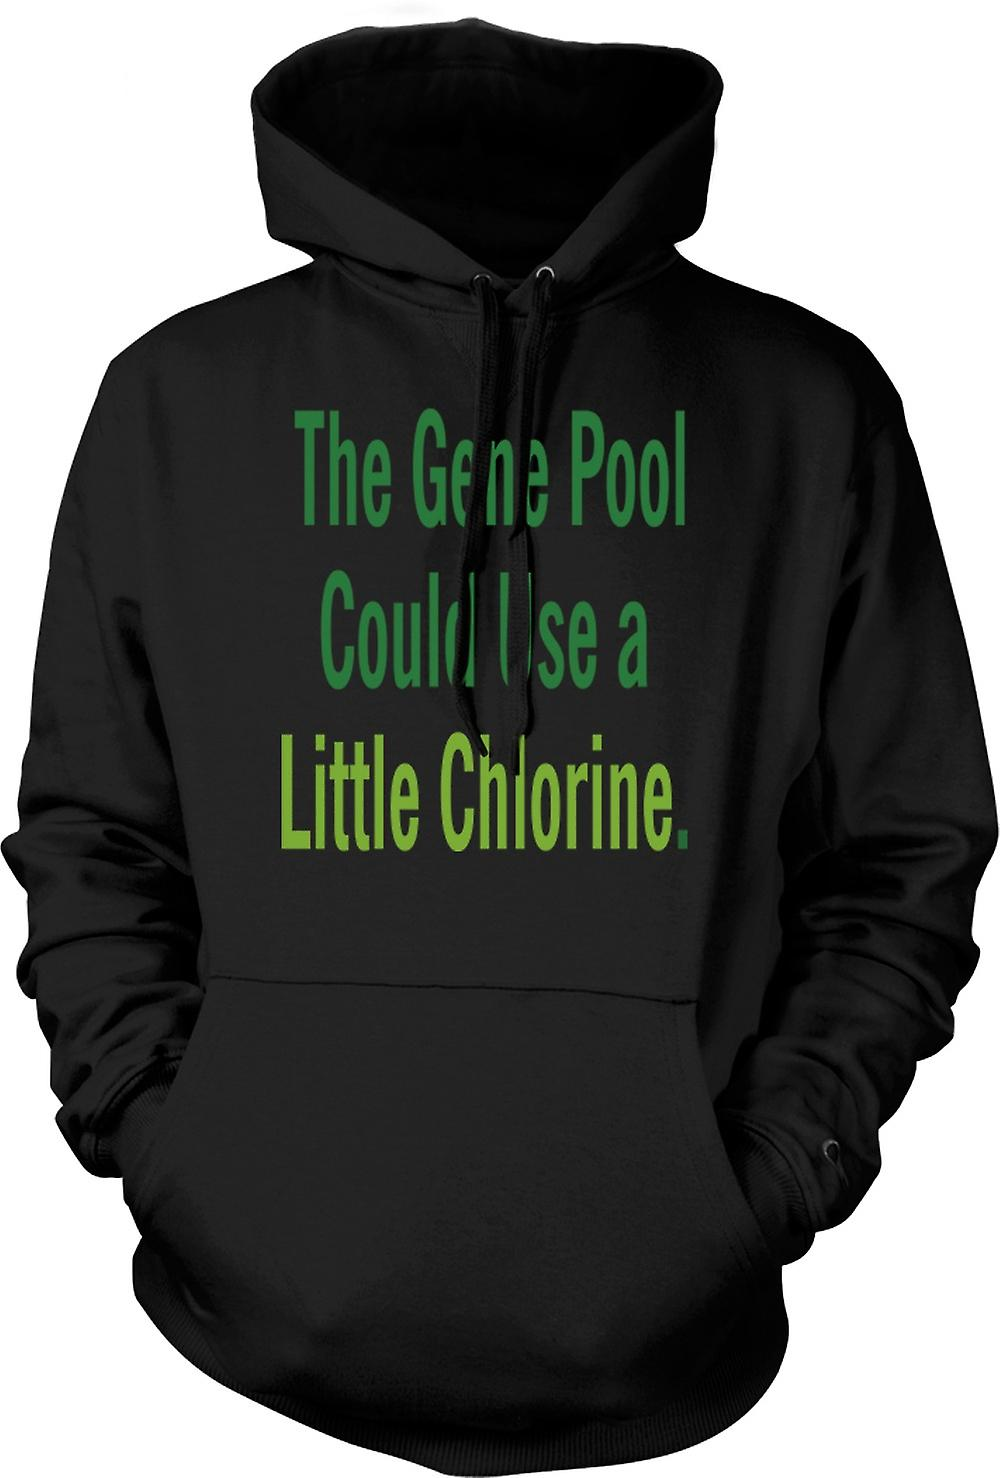 Mens Hoodie The Gene Pool Could Use A Little Chlorine